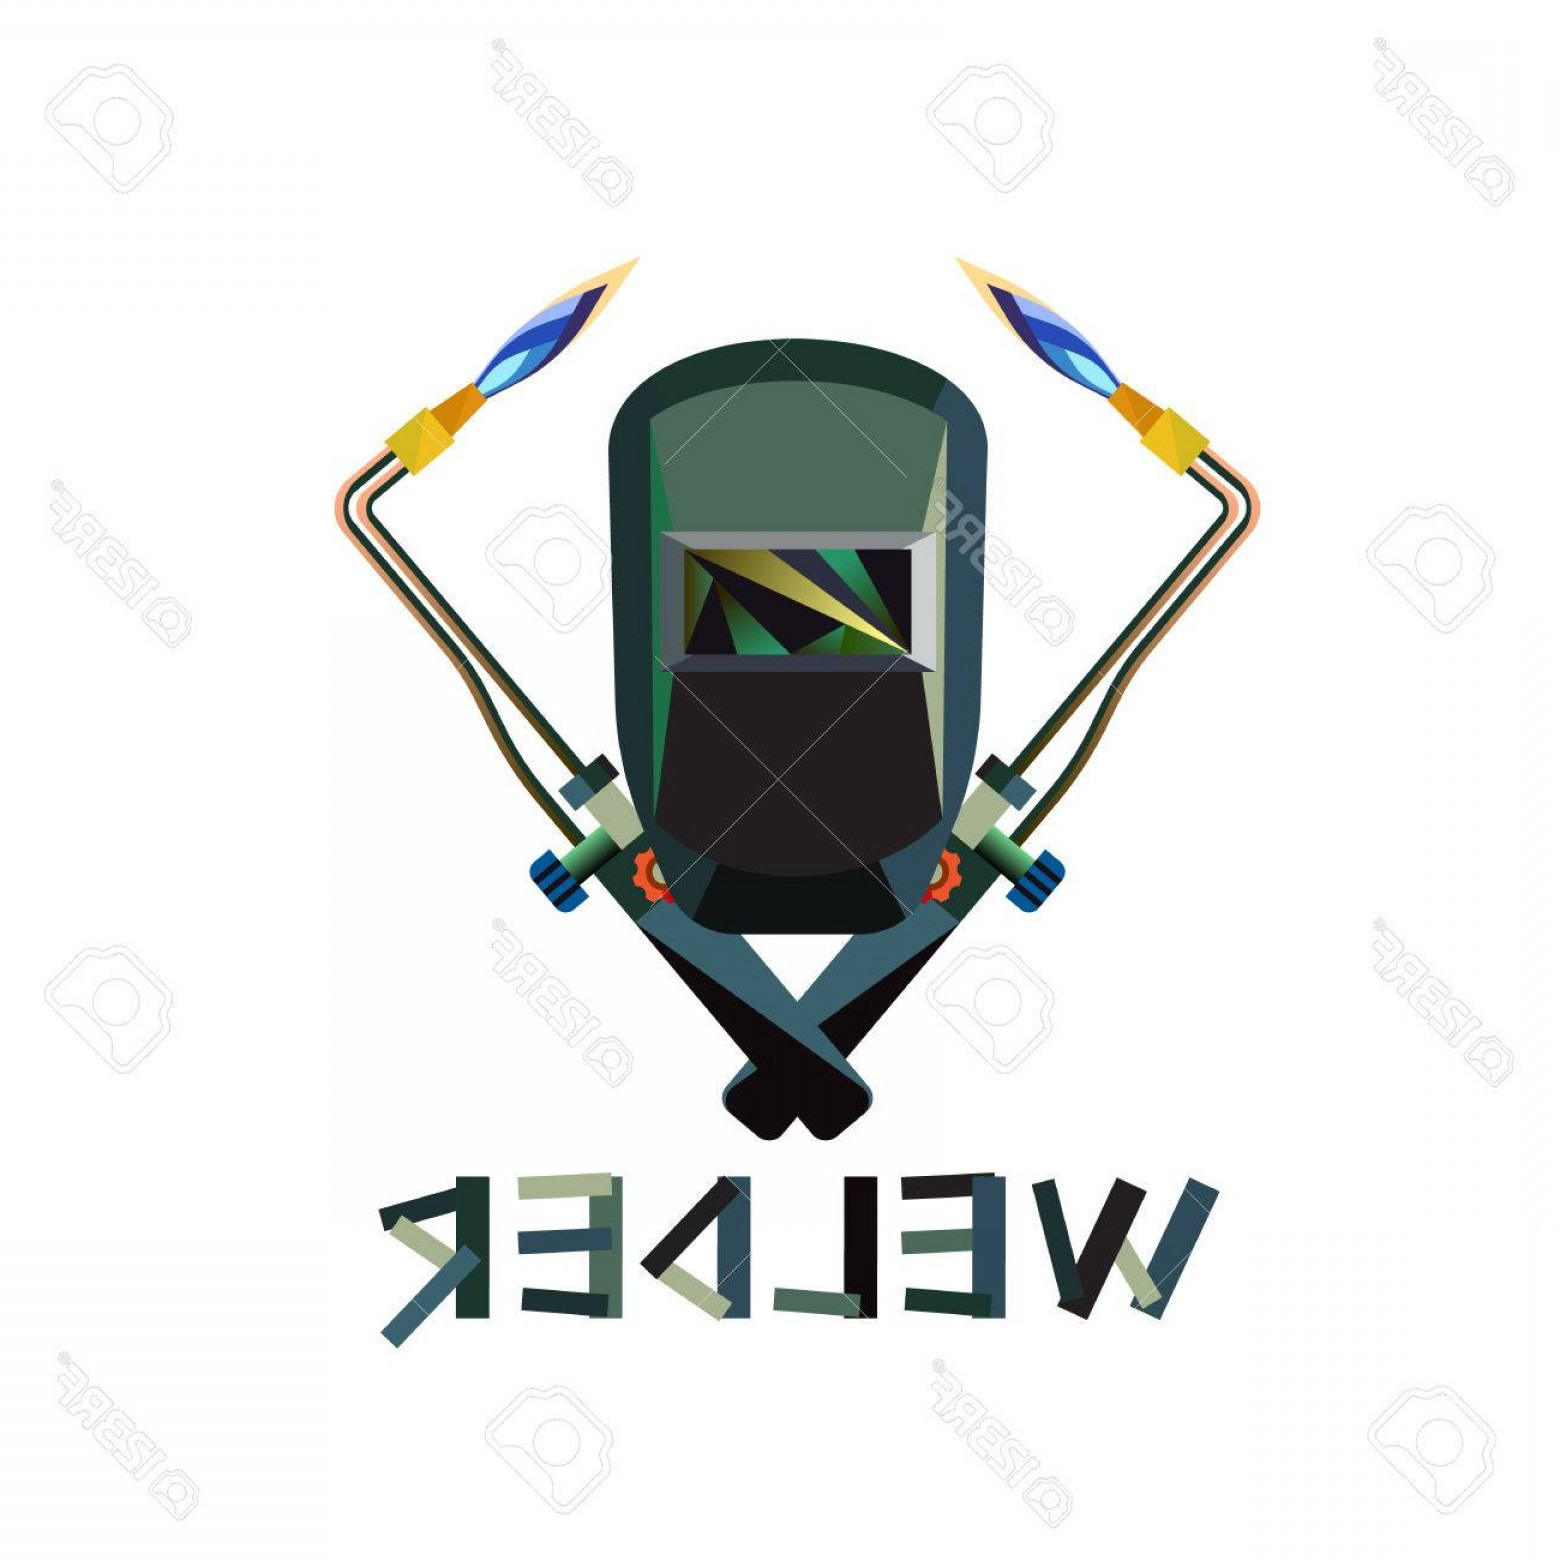 Welder's Torch Vector: Photostock Vector Vector Illustration Of Mask And Welding Torch With Flame